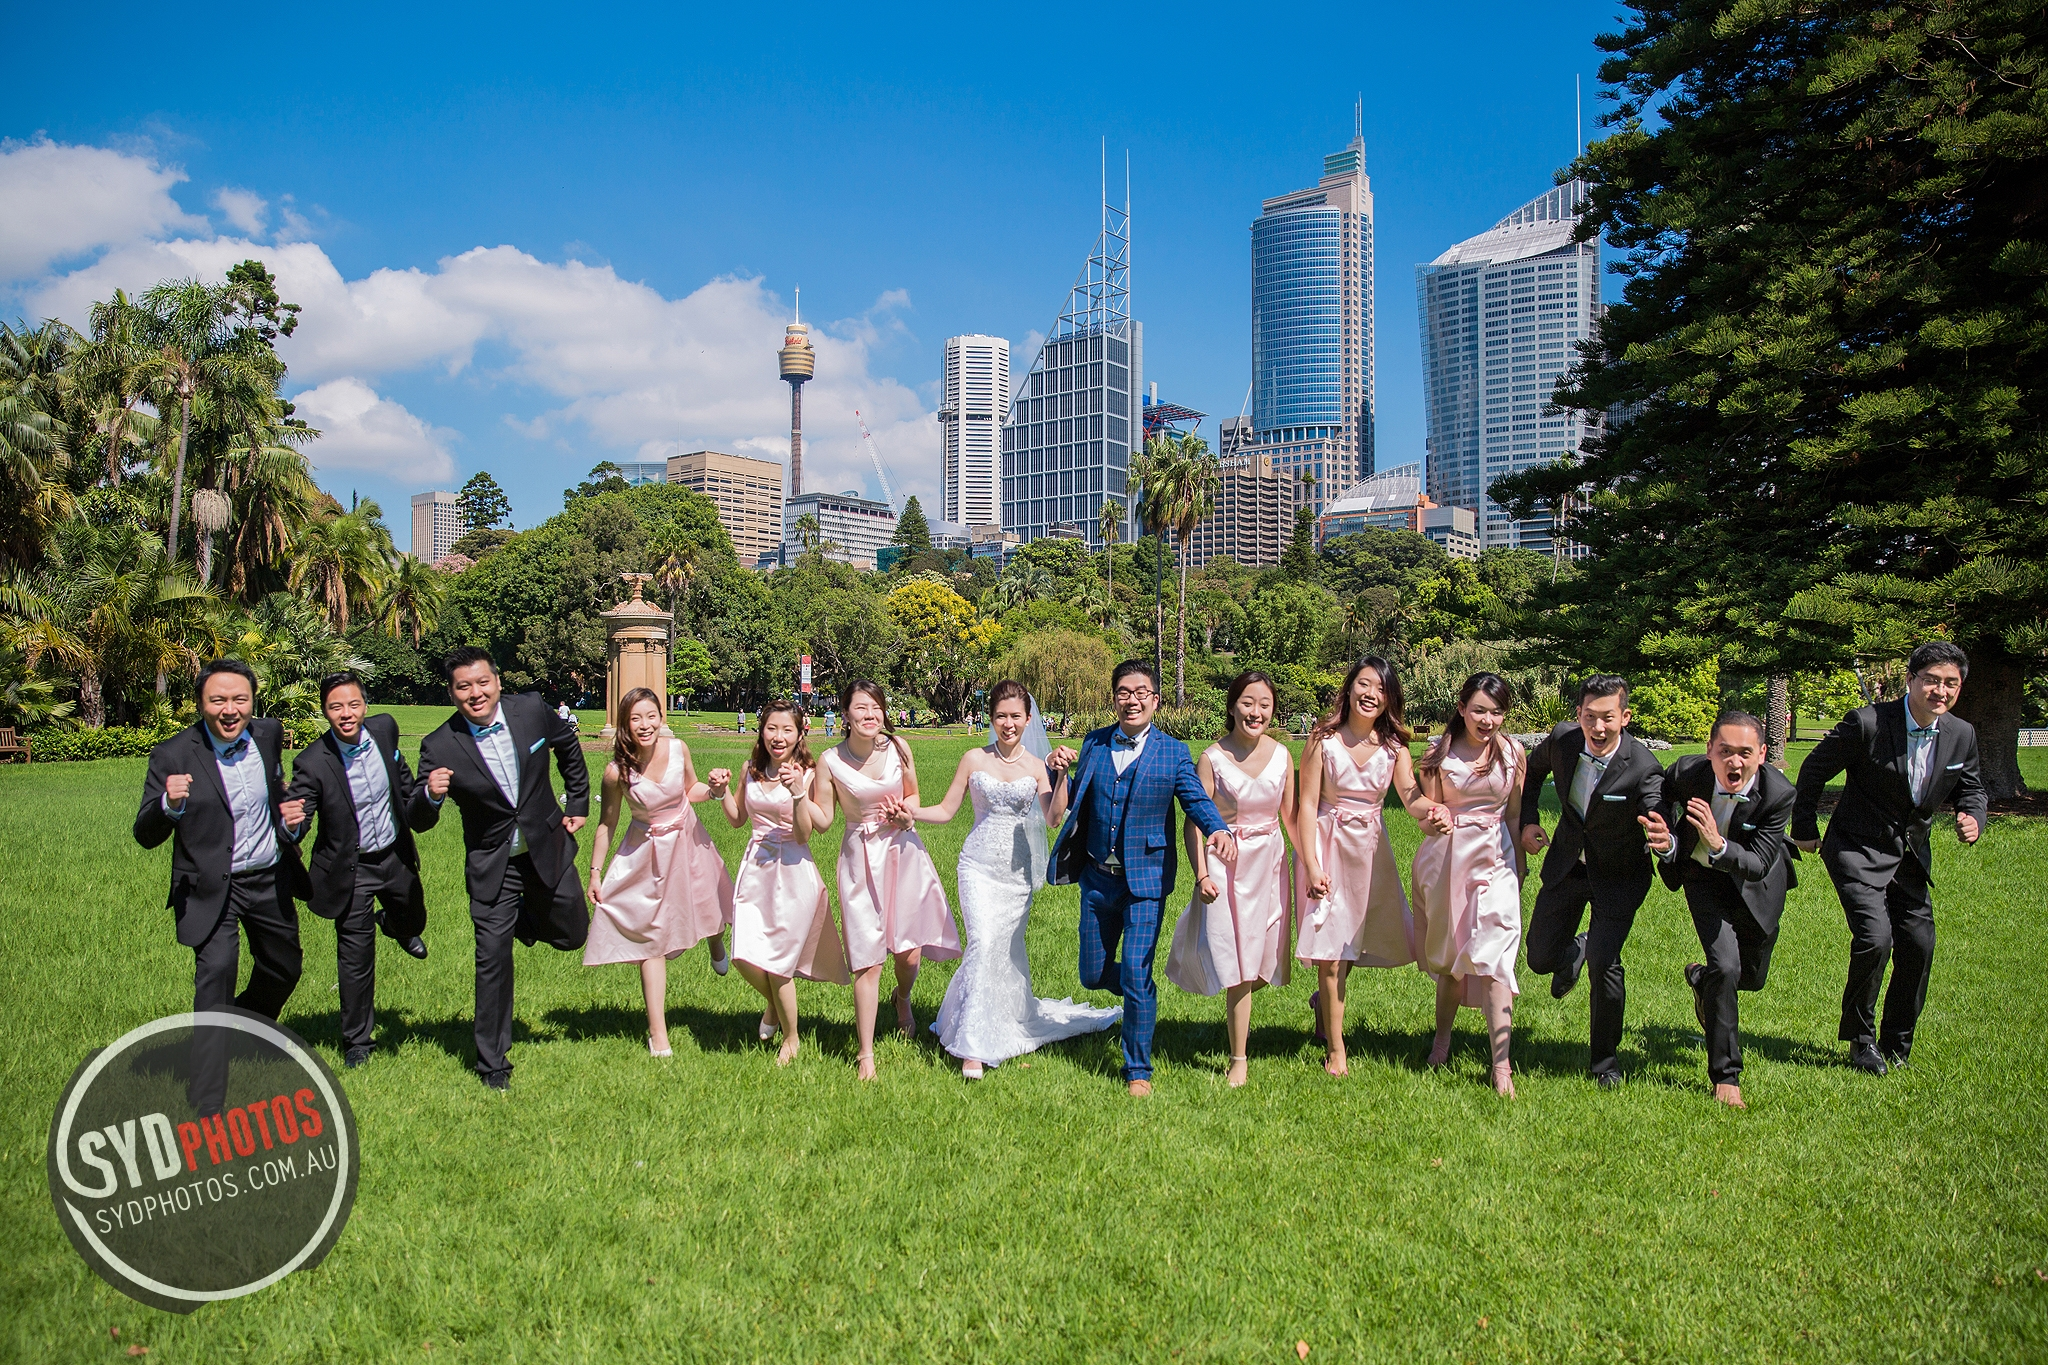 JOCE-9261.jpg, By Photographer Sydphotos.wedding, Created on 29 Jan 2018, SYDPHOTOS Photography all rights reserved.